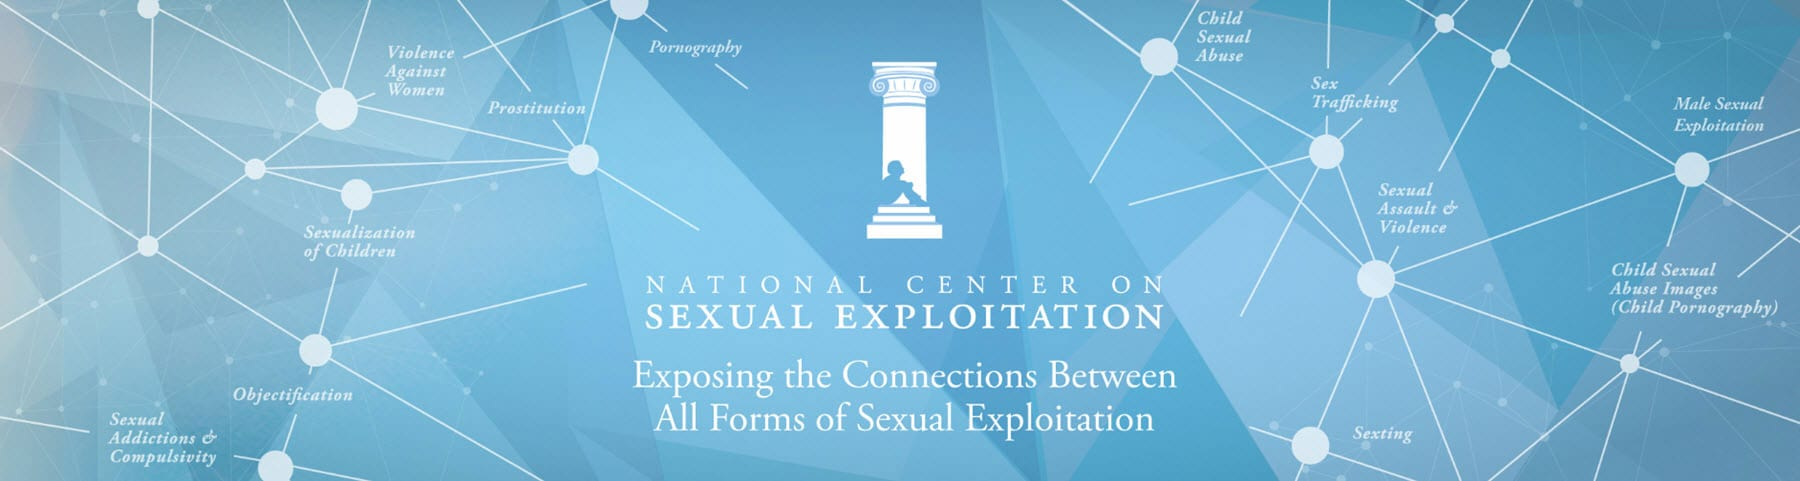 cut pornography out of your life from the National Center for Sexual Exploitation